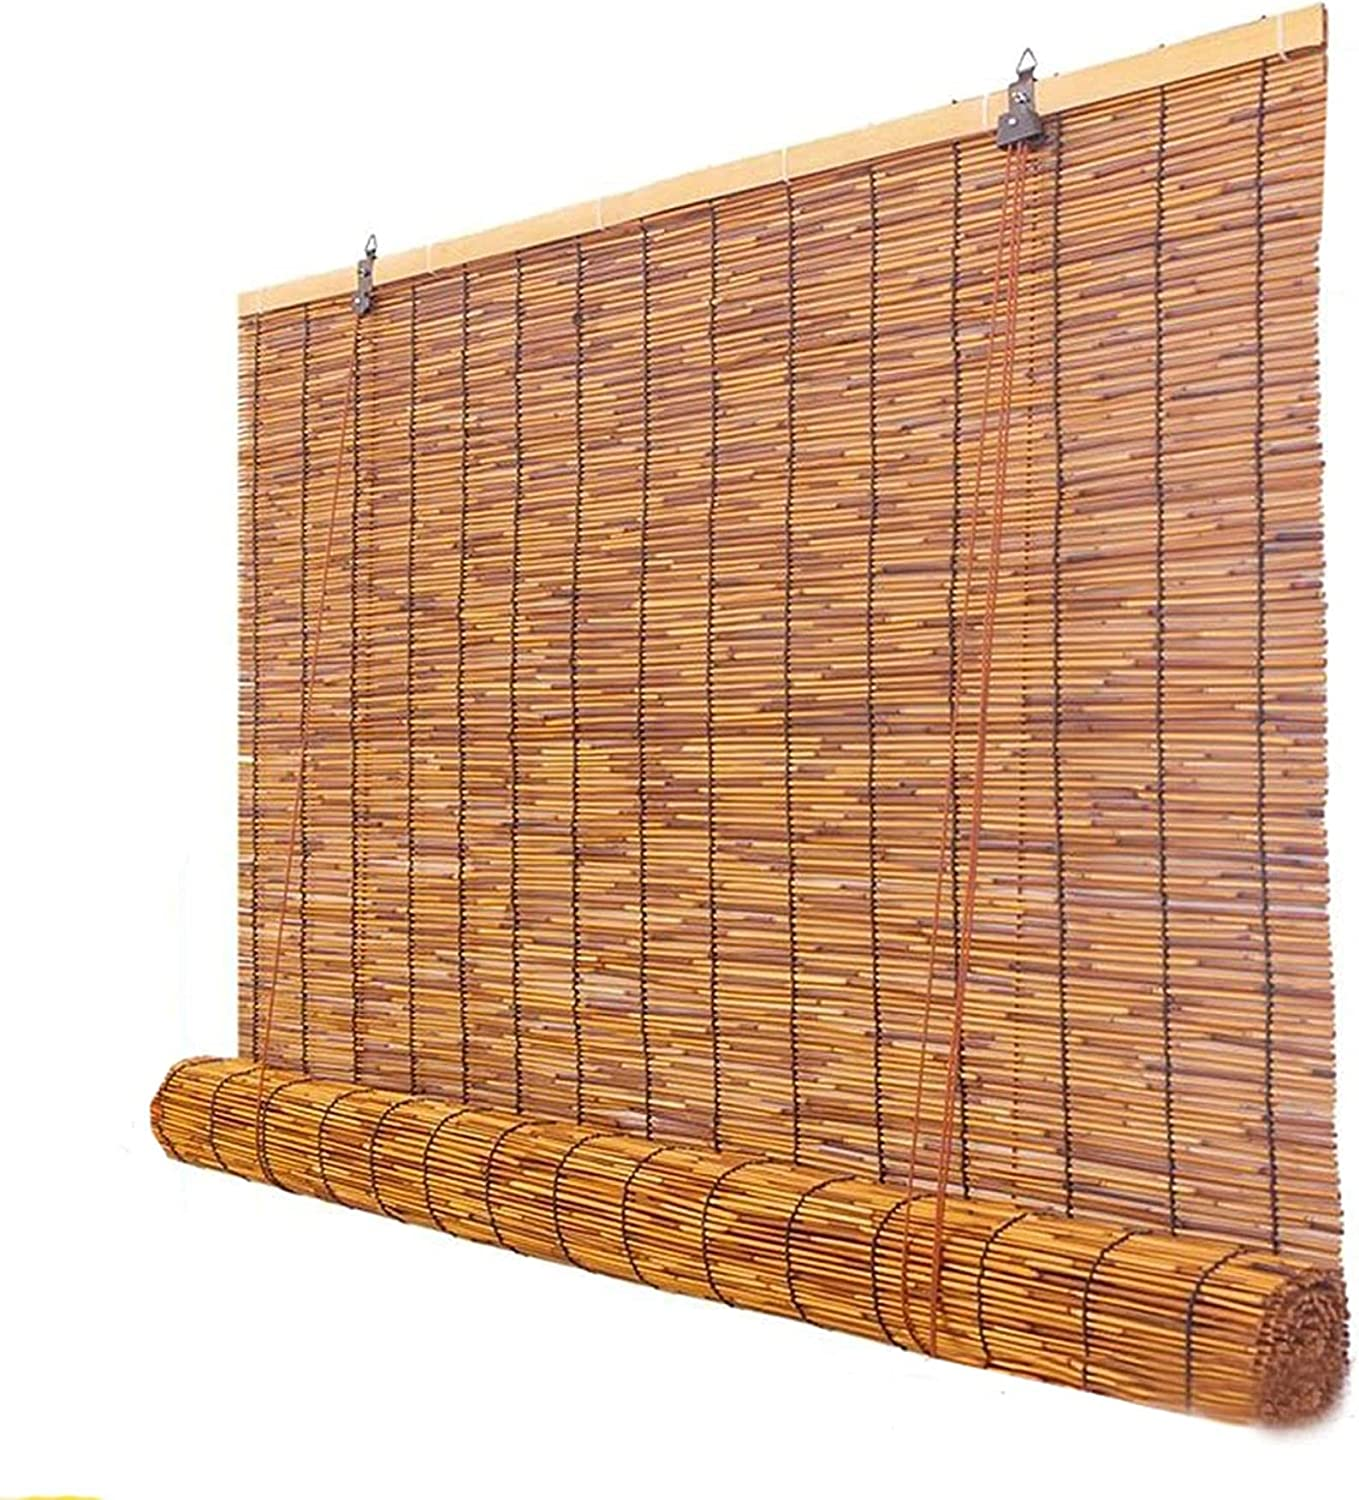 ZHANGF Bamboo Roller Blind Awning Reed Japan Maker New Curtai Sale price Decorative Natural